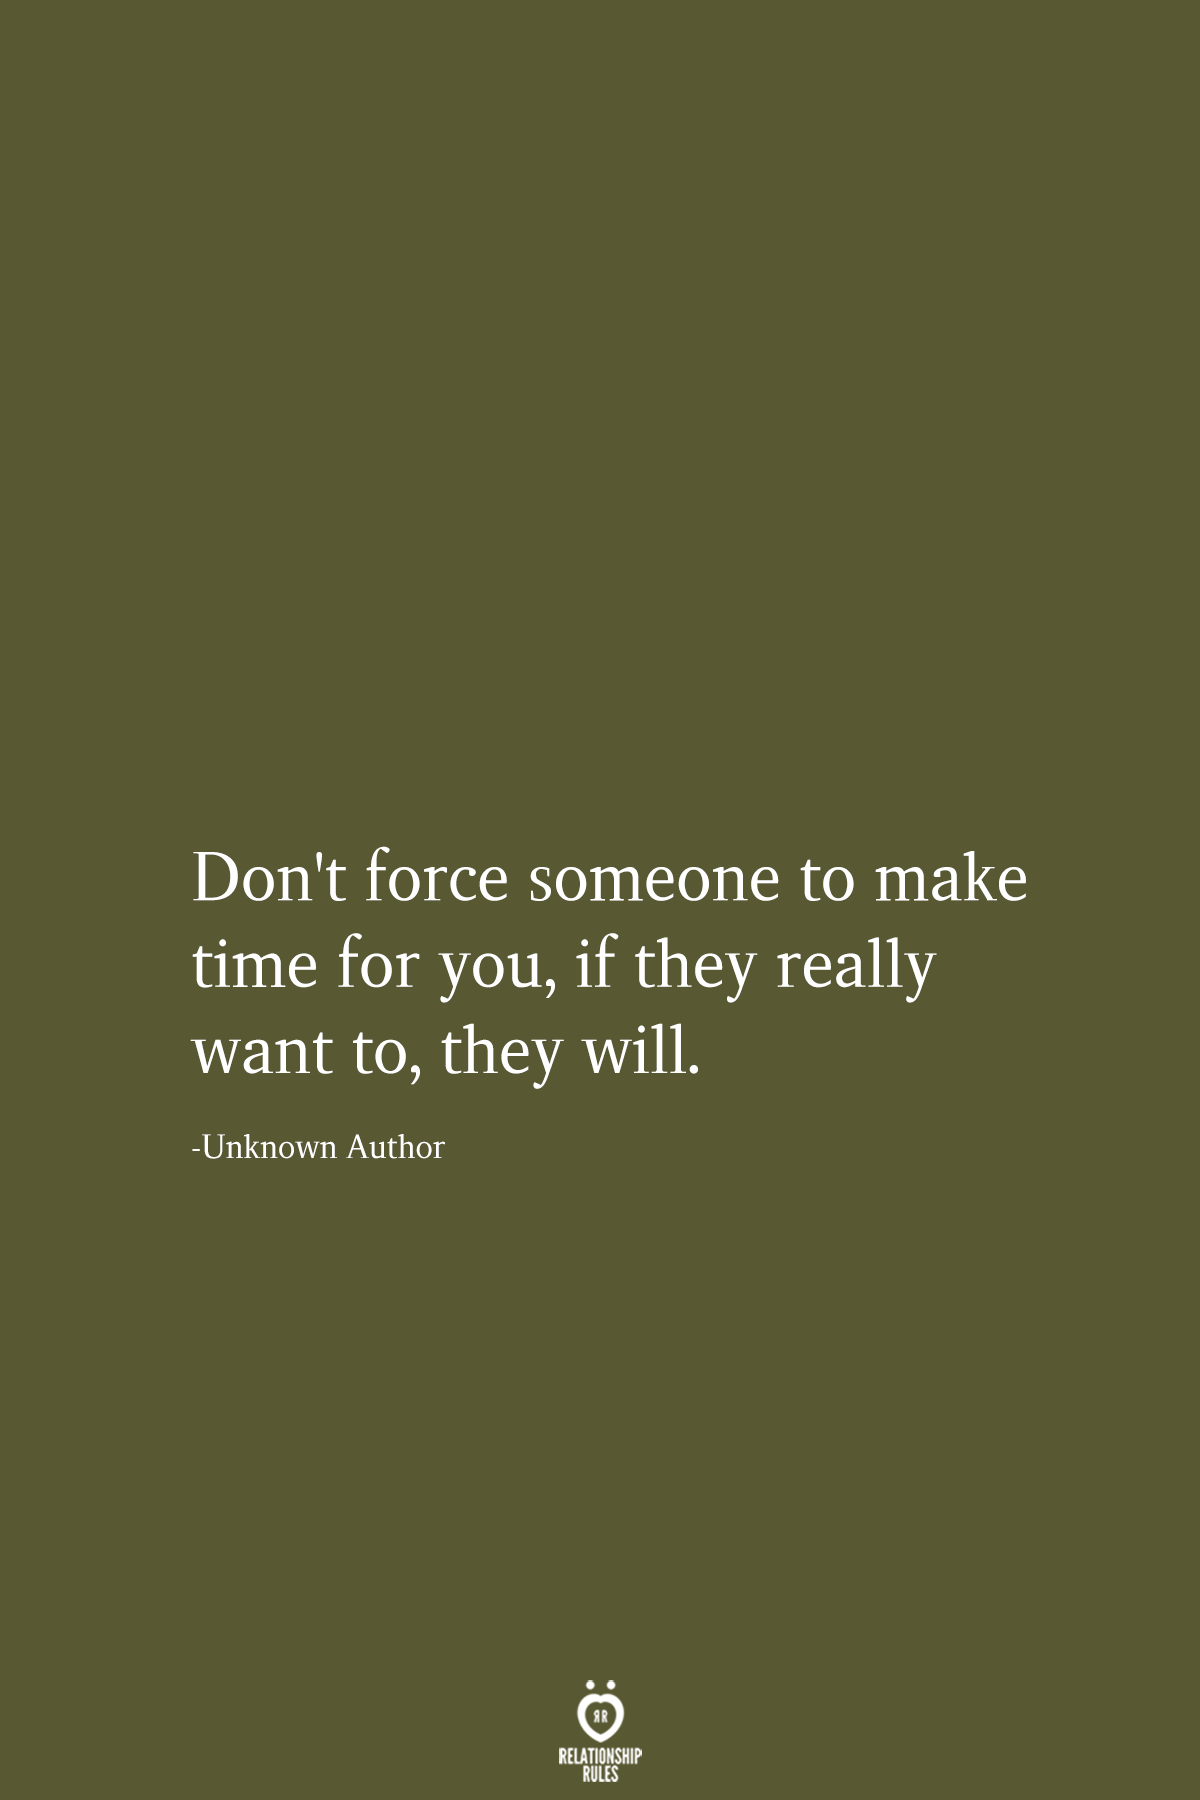 Don't Force Someone To Make Time For You, If They Really Want To, They Will